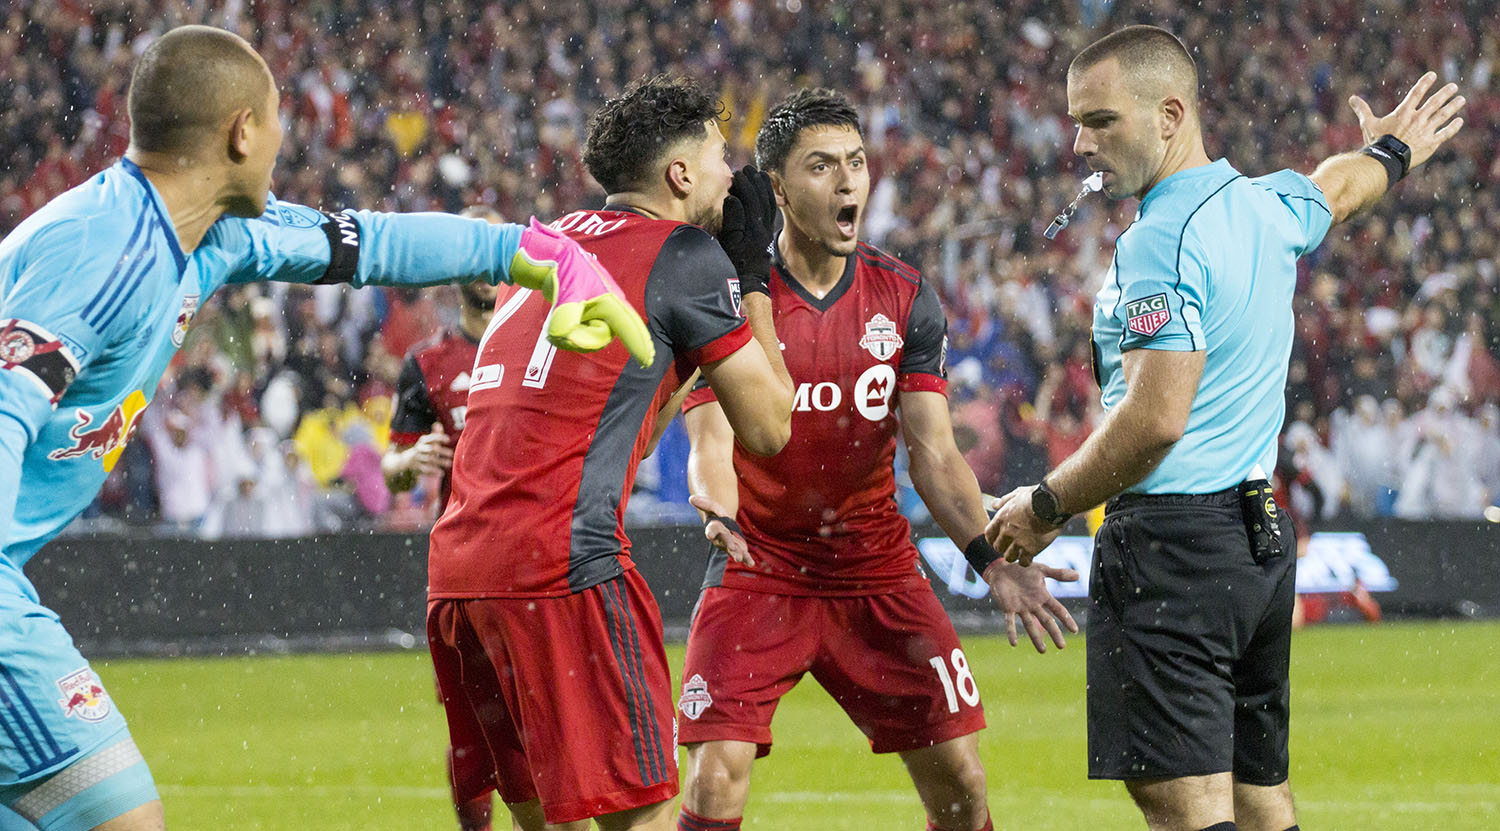 Luis Robles and Marky Delgado argue with the first official Chris Penso as to whether the ball went past the goal line or not. Image by Dennis Marciniak of denMAR Media.